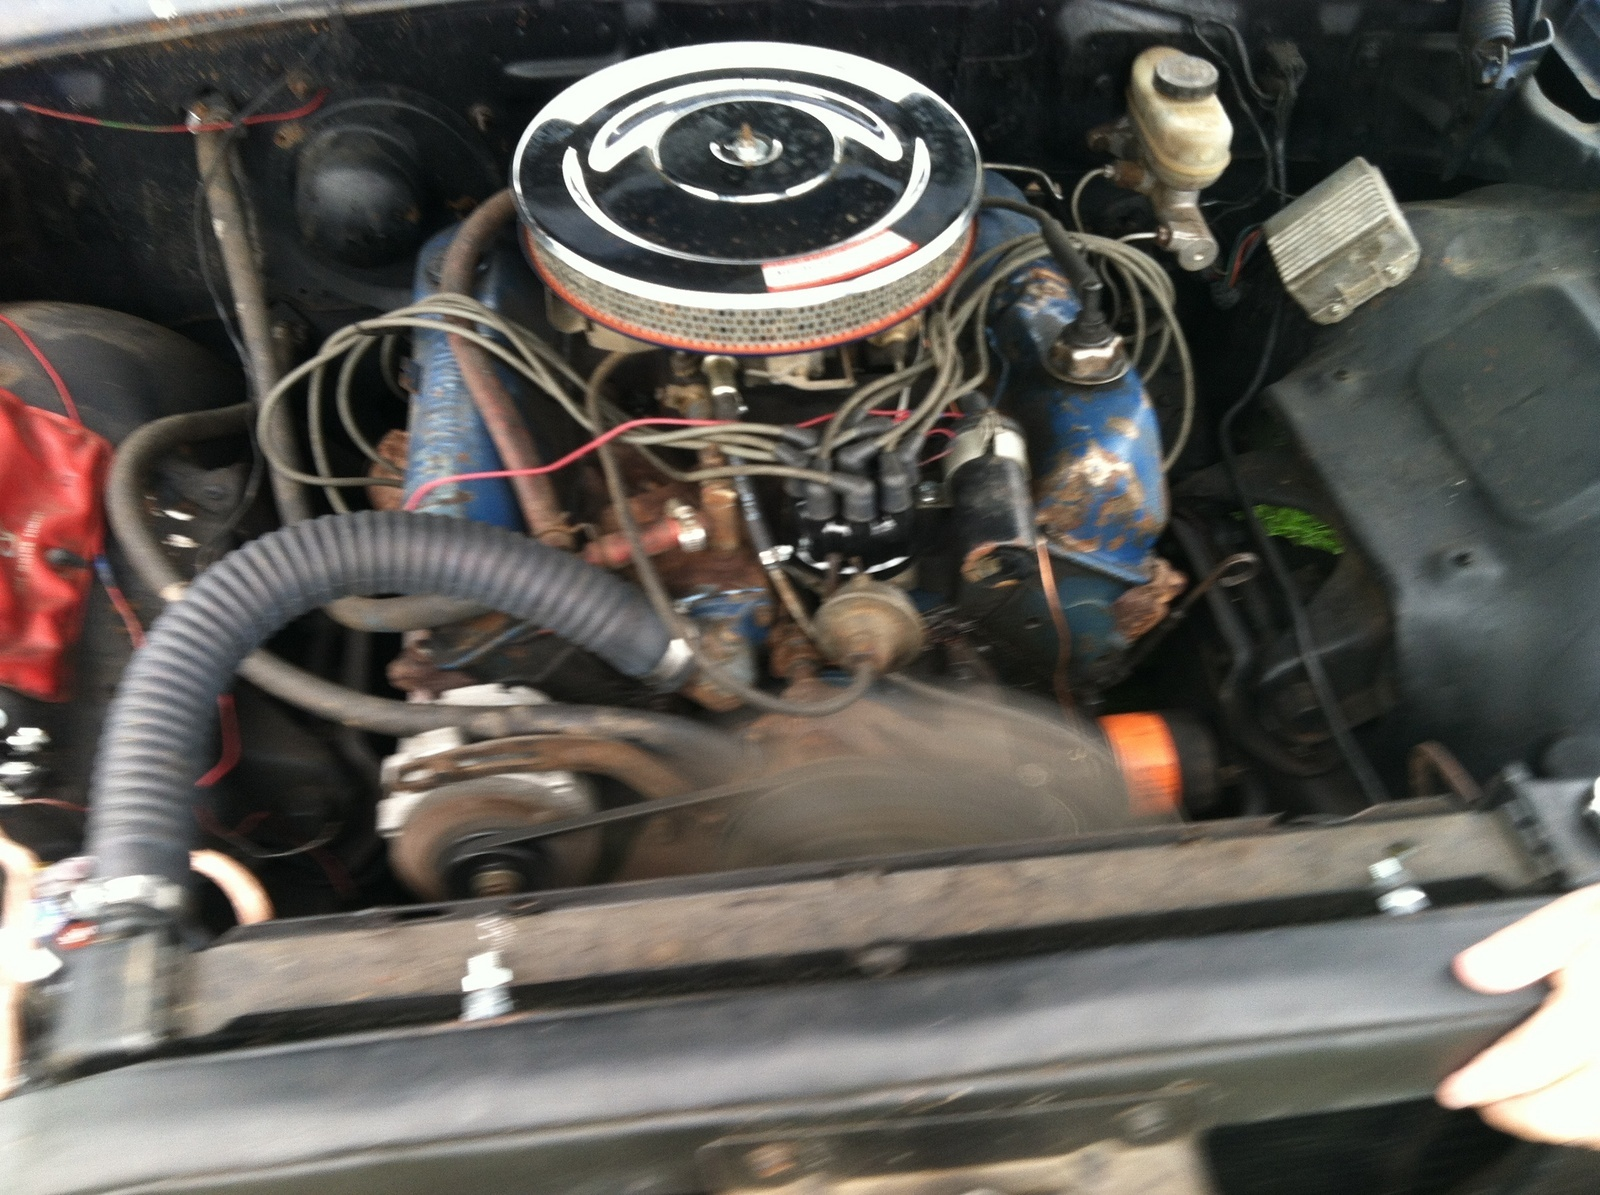 1967 Ford Galaxie 390 Wiring Diagram Circuit Wiring And Diagram Hub \u2022 1966  Ford Mustang Wiring Diagram 1963 Ford Galaxie Engine Wiring Diagram